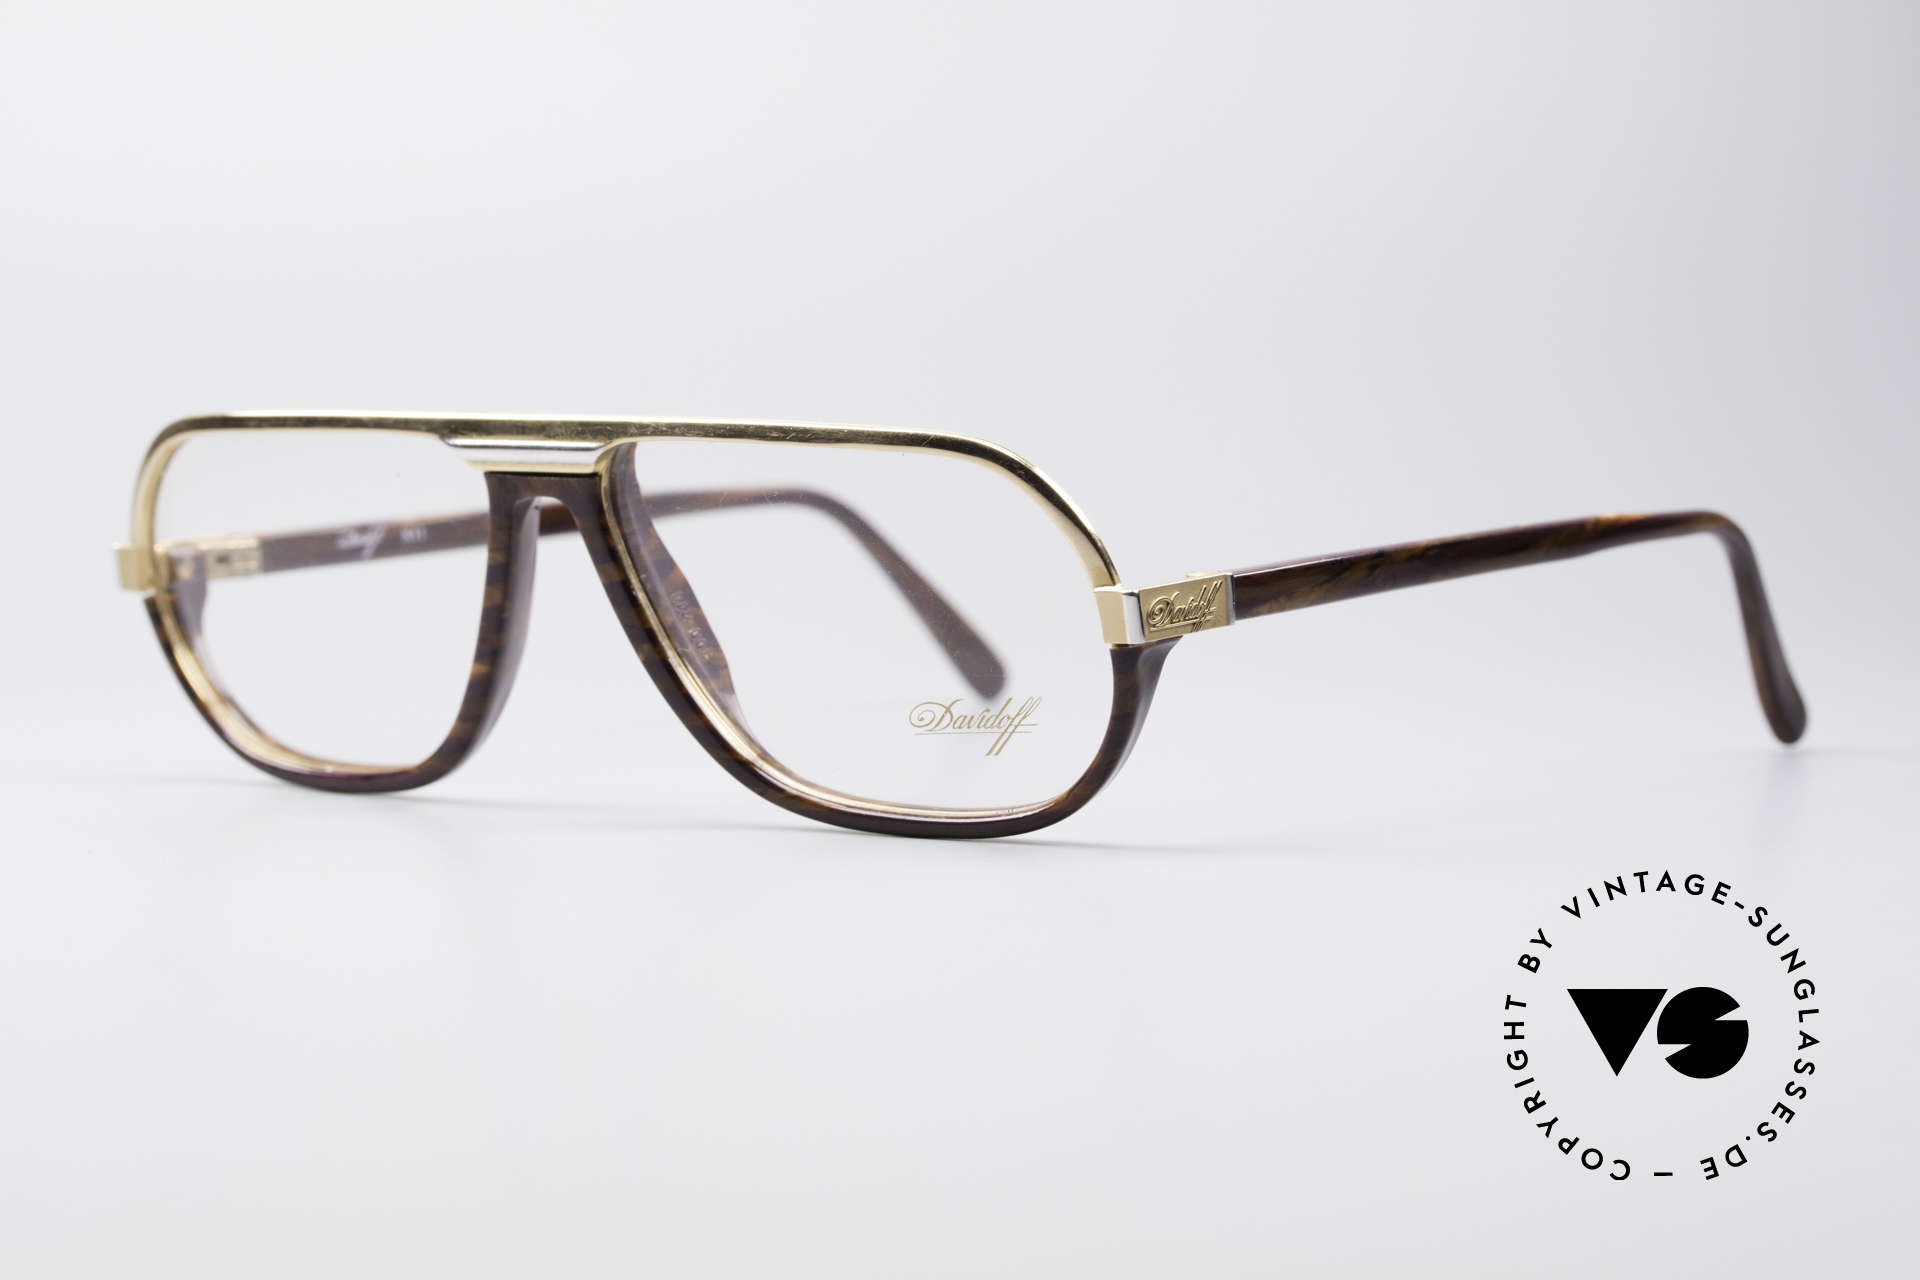 Davidoff 300 Small Men's Vintage Glasses, gold with noble design elements in root wood pattern, Made for Men